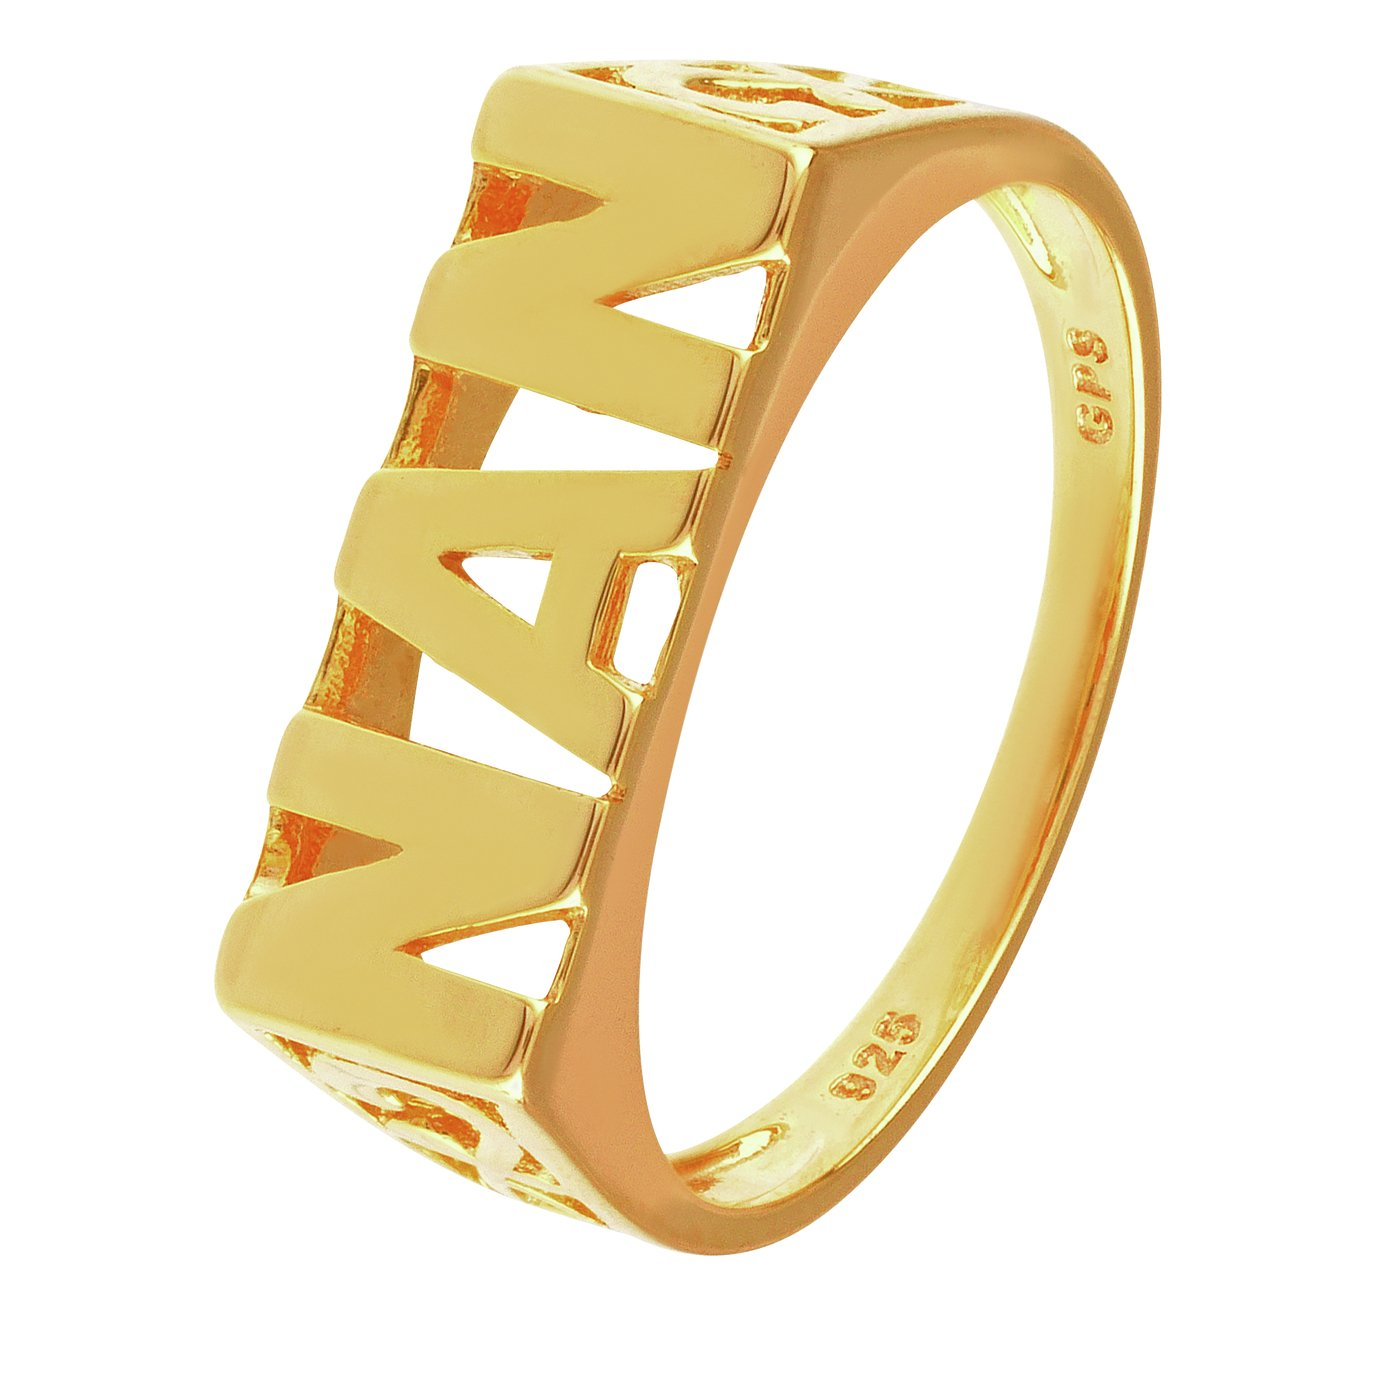 Image of Moon & Back 9ct Gold Plated Sterling Silver Nan Ring